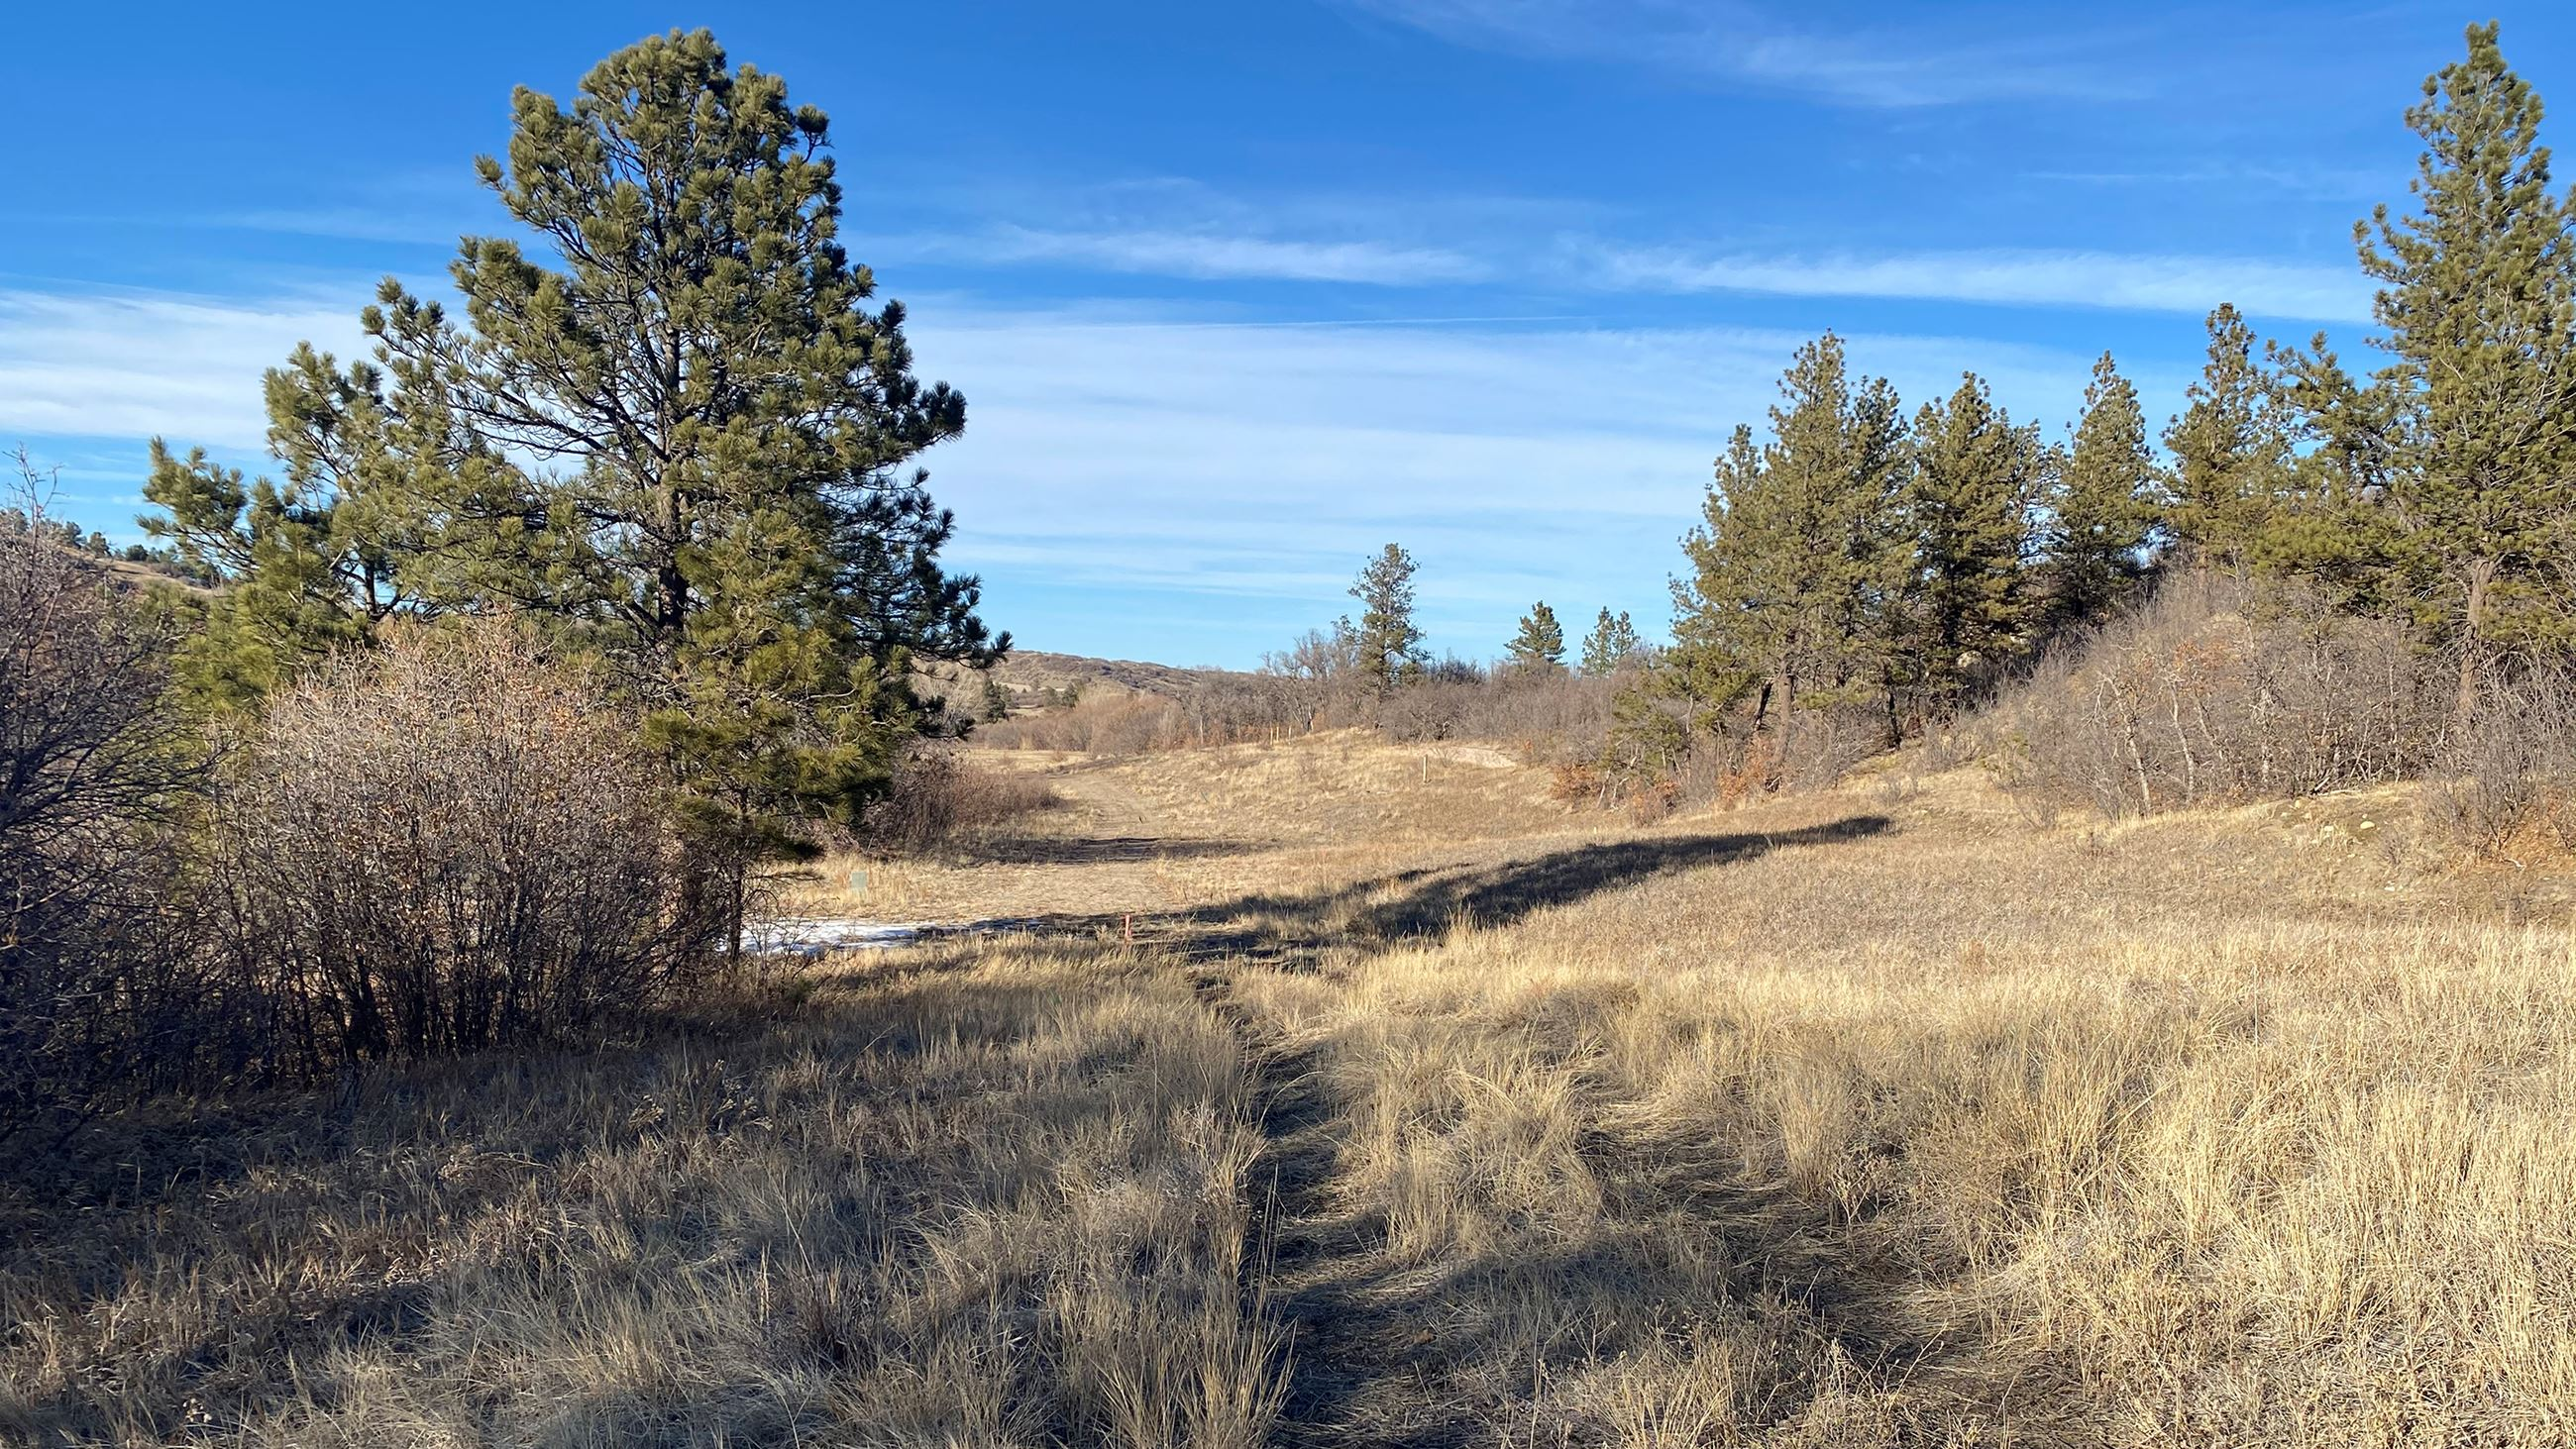 view from the new trail segment